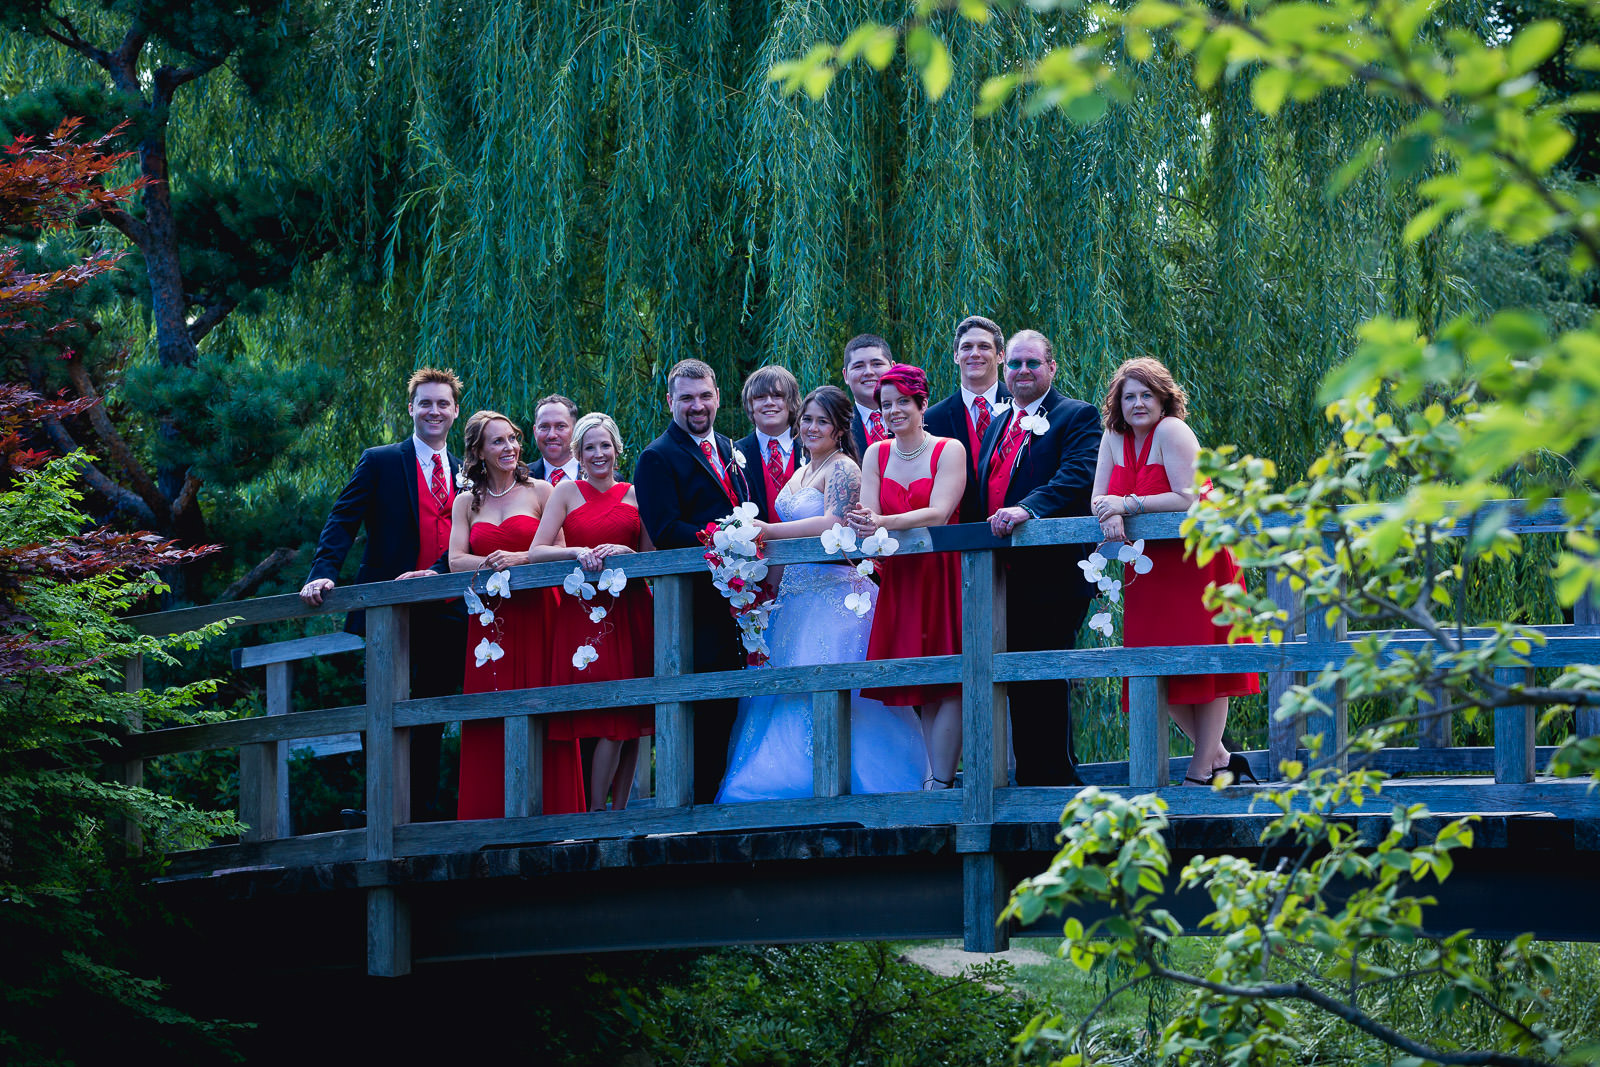 Wedding Photography at Anderson Japanese Gardens in Rockford, IL